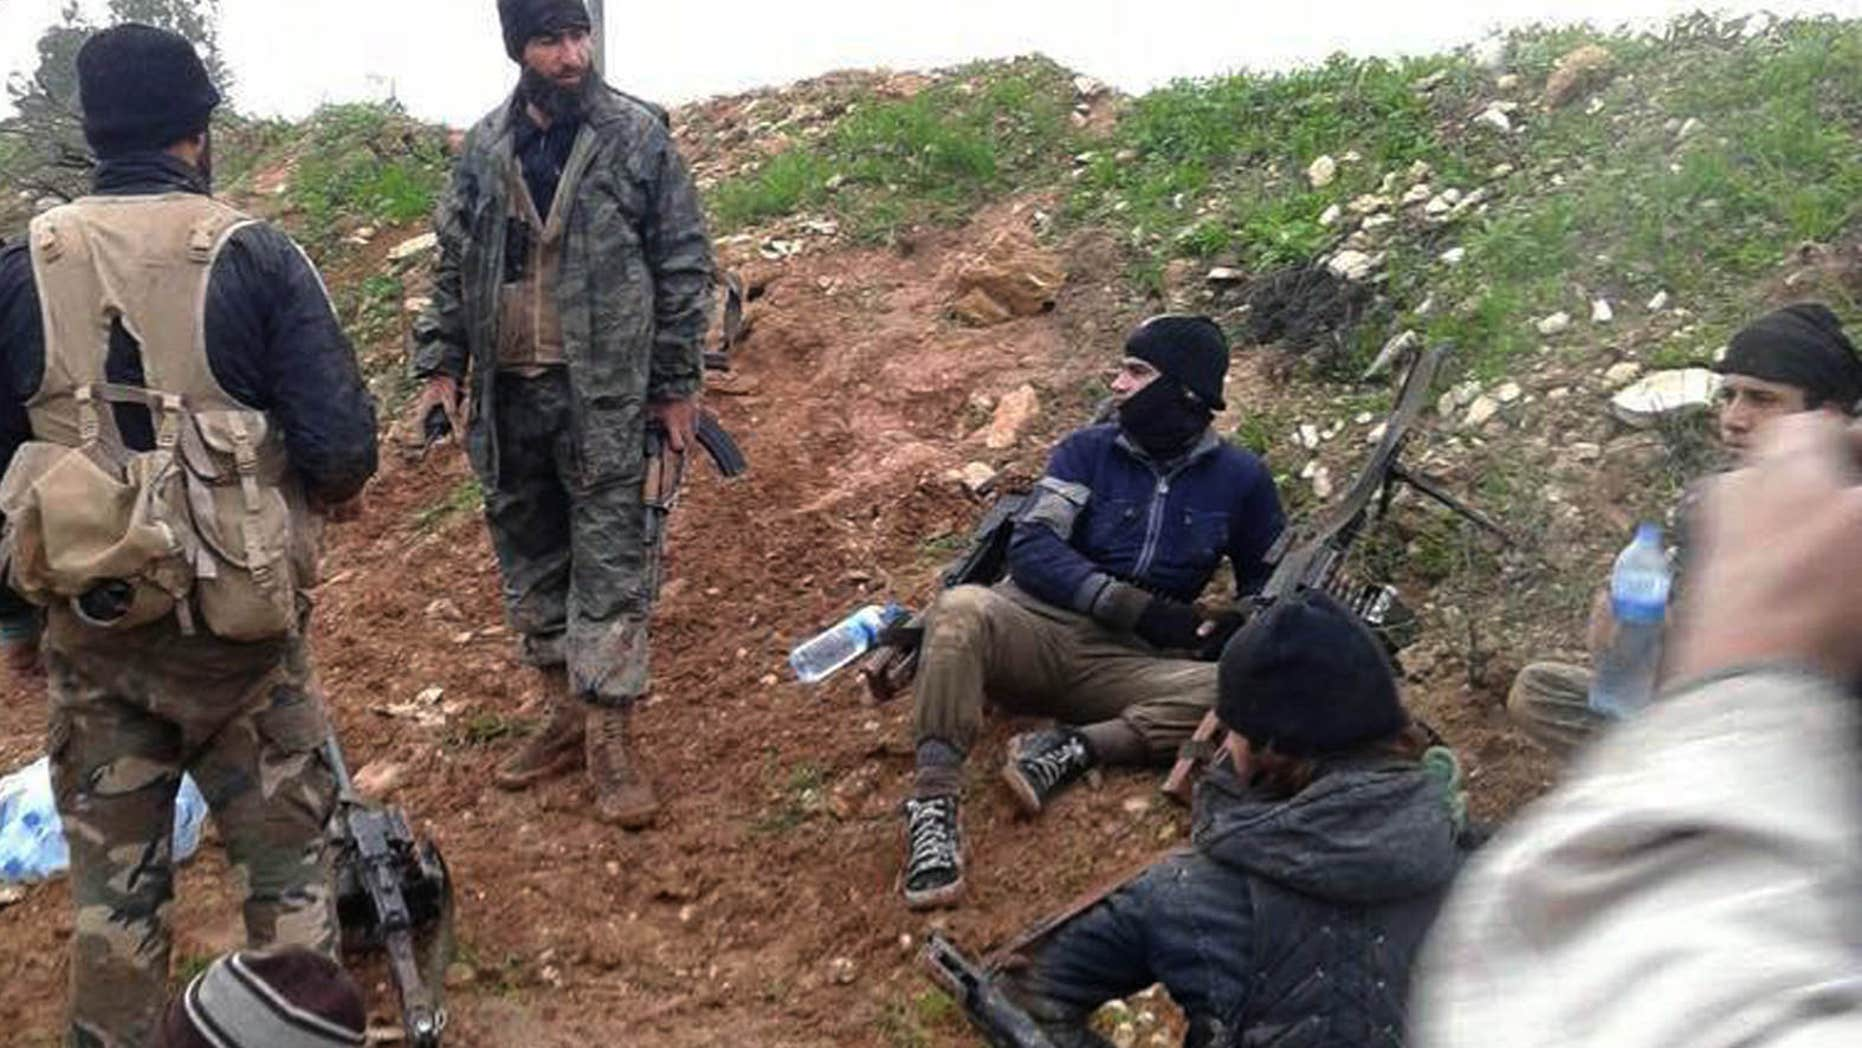 FILE - In this Dec. 14, 2014 file photo provided by the anti-government activist group Syrian Observatory for Human Rights, which has been authenticated based on its contents and other AP reporting, shows fighters from the Al Qaeda-linked Nusra Front and other rebel factions resting after clashes with Syrian troops in Wadi Deif in the northwestern province of Idlib, Syria.